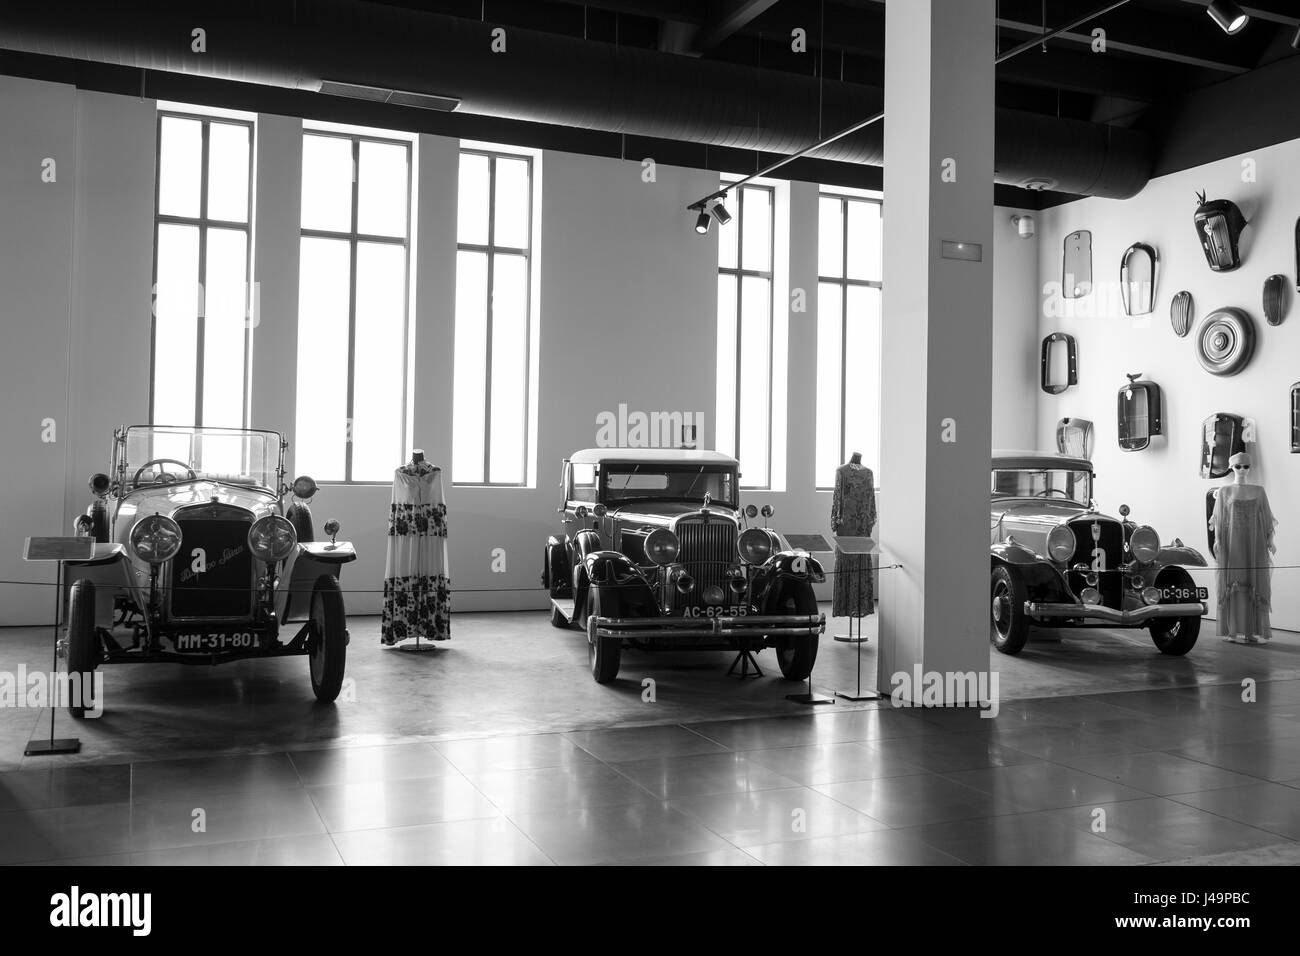 Automobile museum of Málaga, Andalusia, Spain - Stock Image